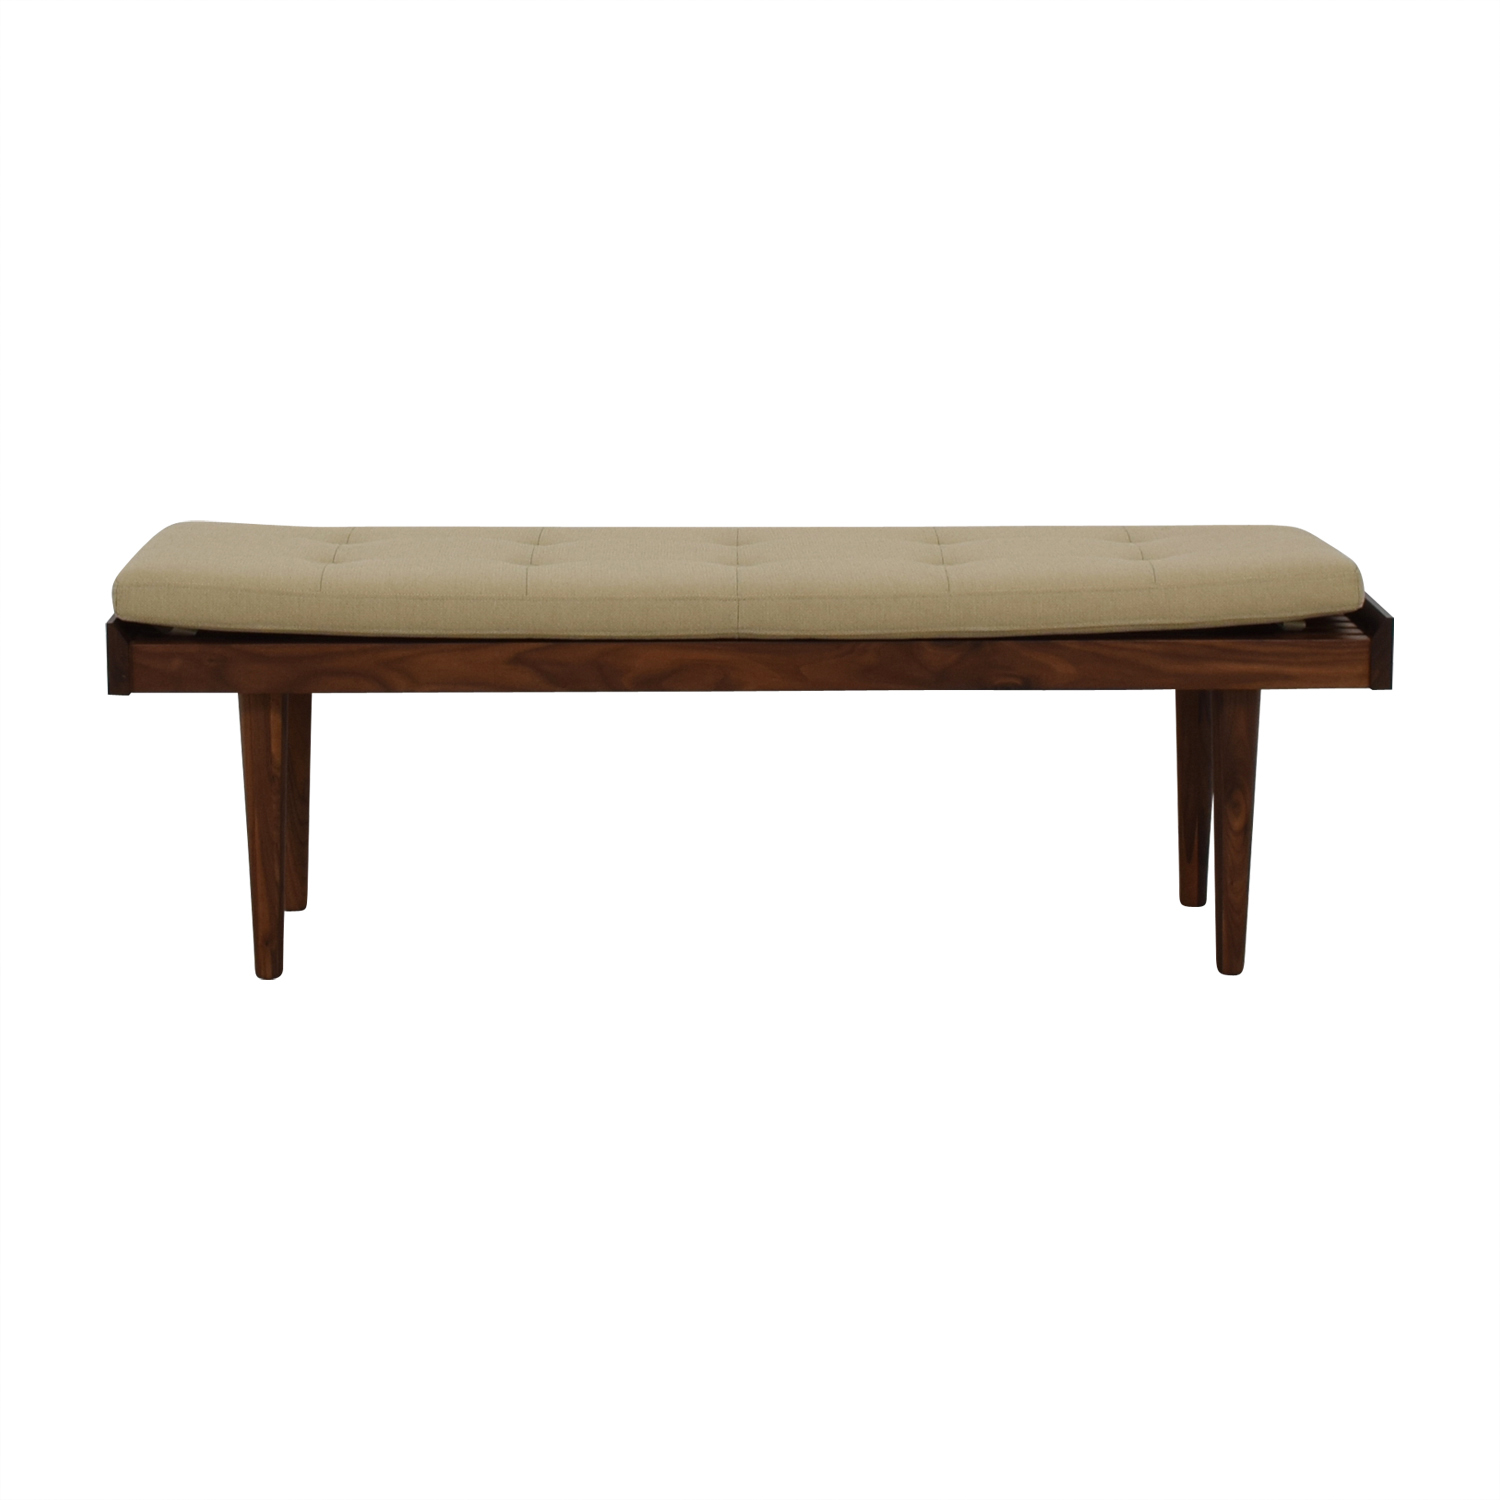 buy Crate & Barrel Beige Upholstered Wood Bench Crate & Barrel Benches